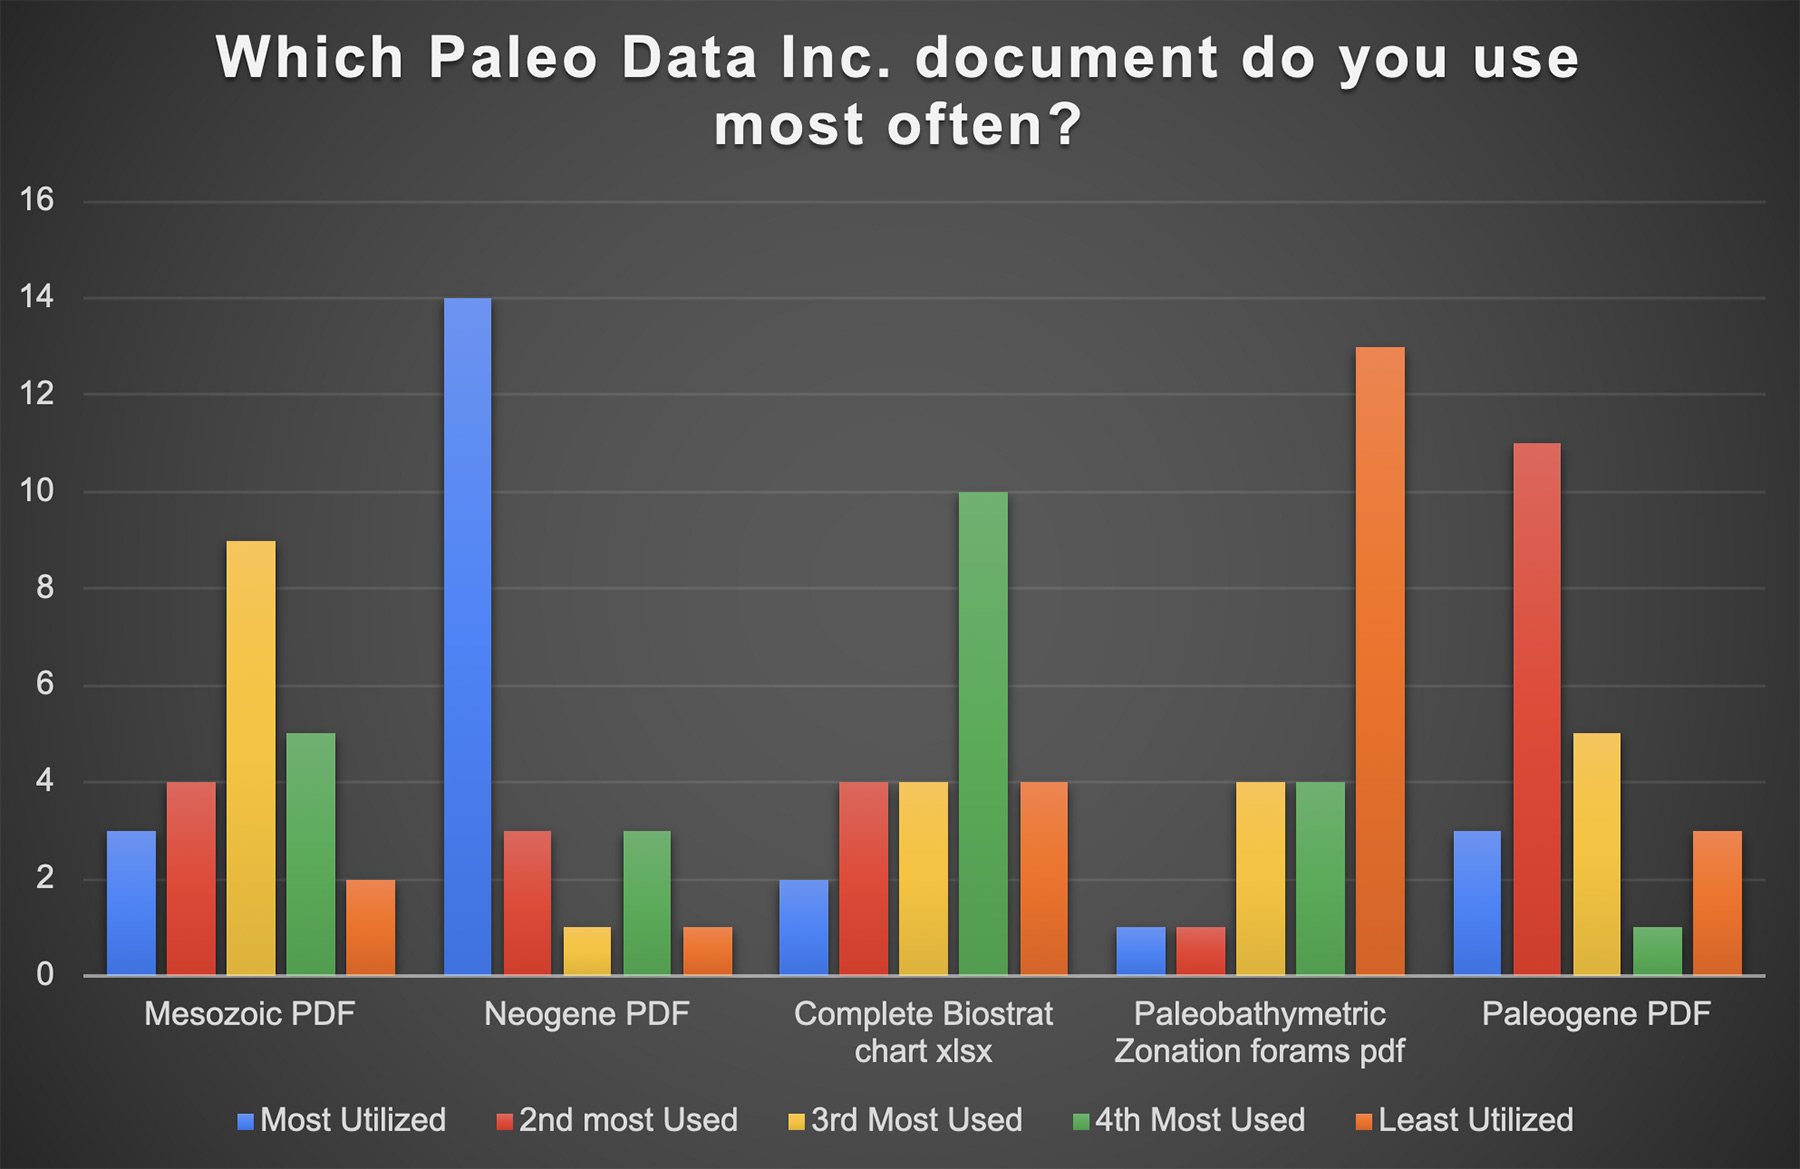 Most Used Paleo Data Document Chart